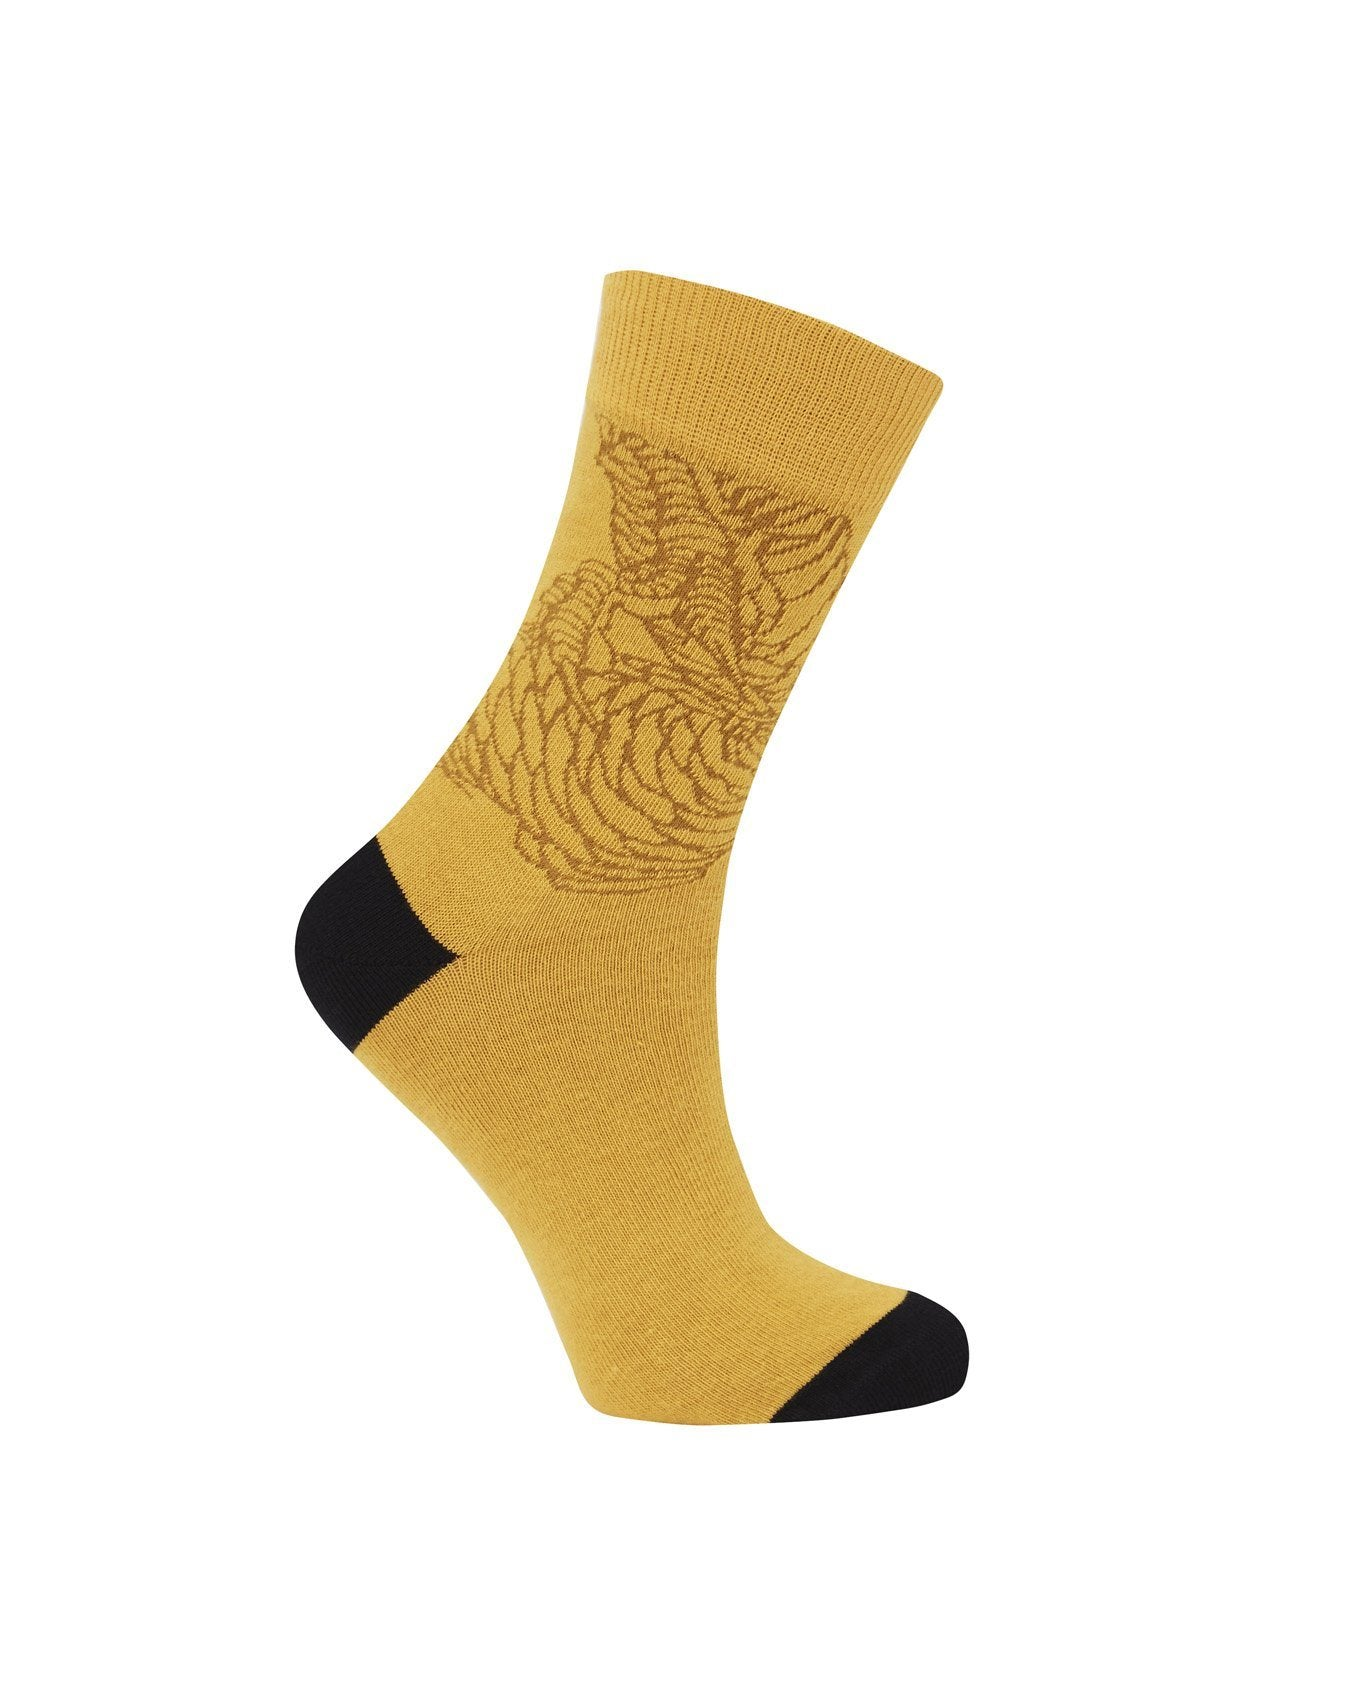 Socks - DRAGON Gold - GOTS Organic Cotton Socks